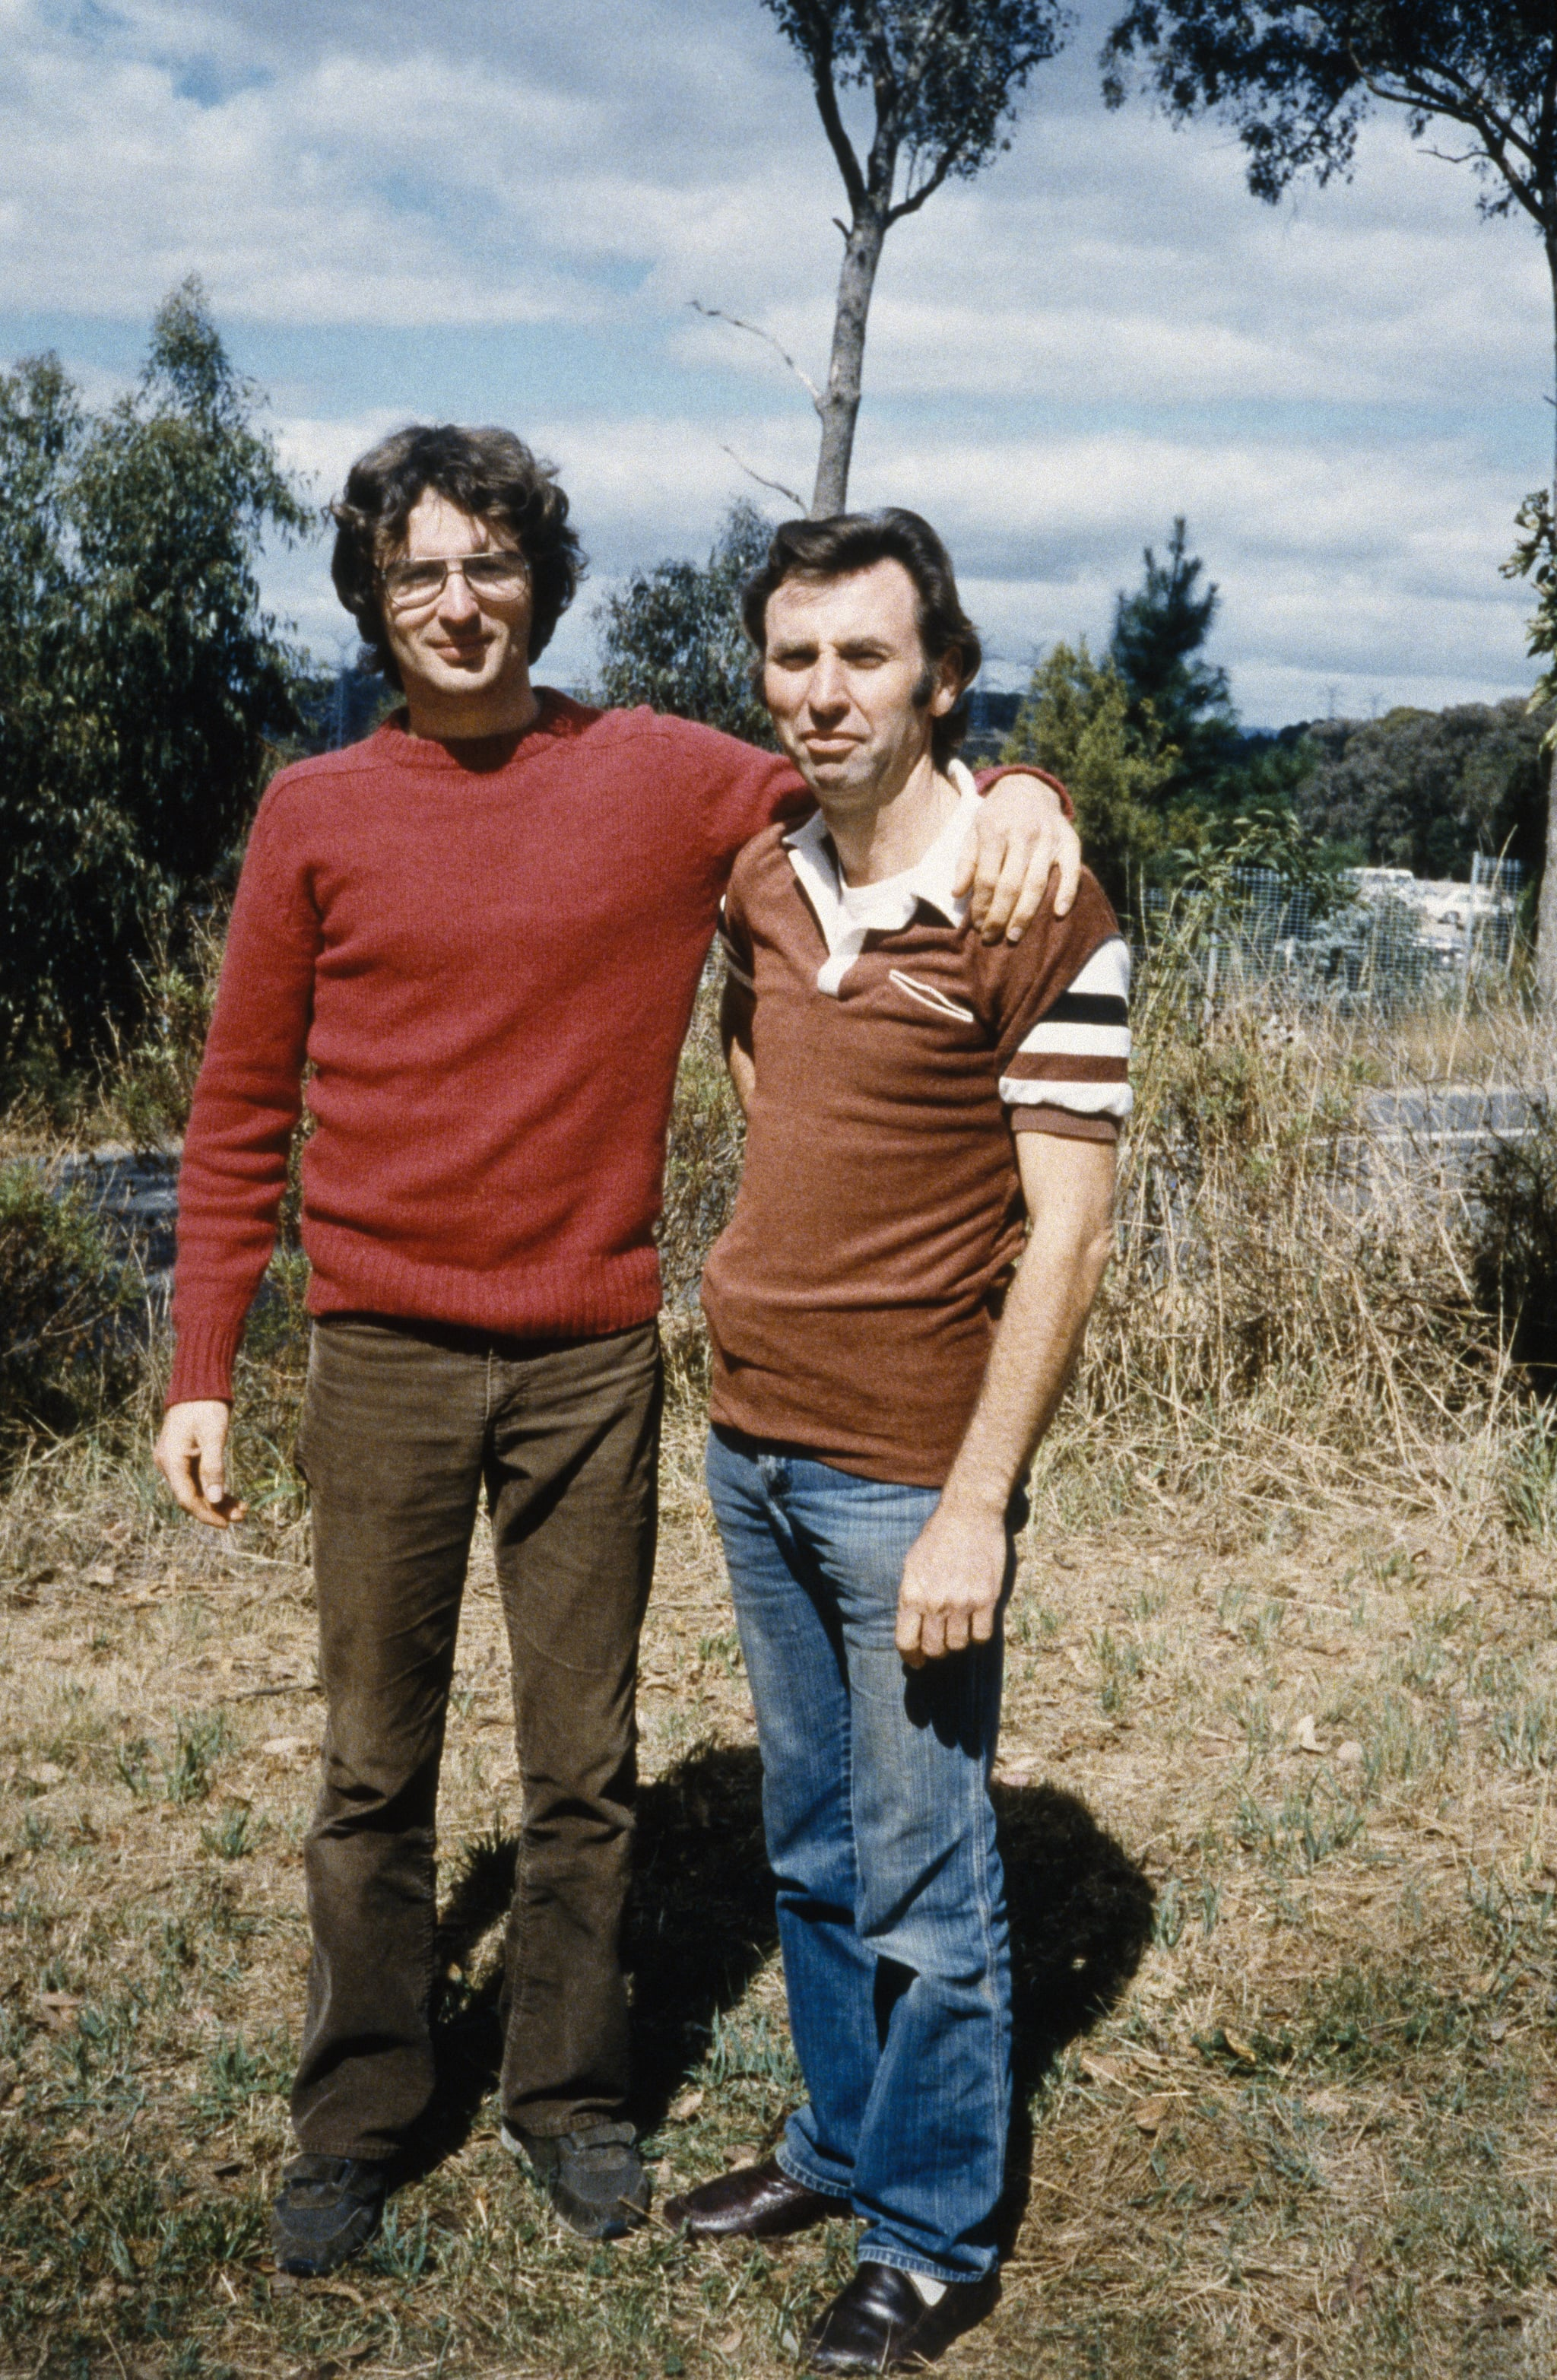 Branch Davidian founder David Koresh (L.) during his first visit to Australia to recruit members. He was accompanied by Clive Doyle (R.) on the trip. (Photo by Elizabeth Baranyai/Sygma via Getty Images)